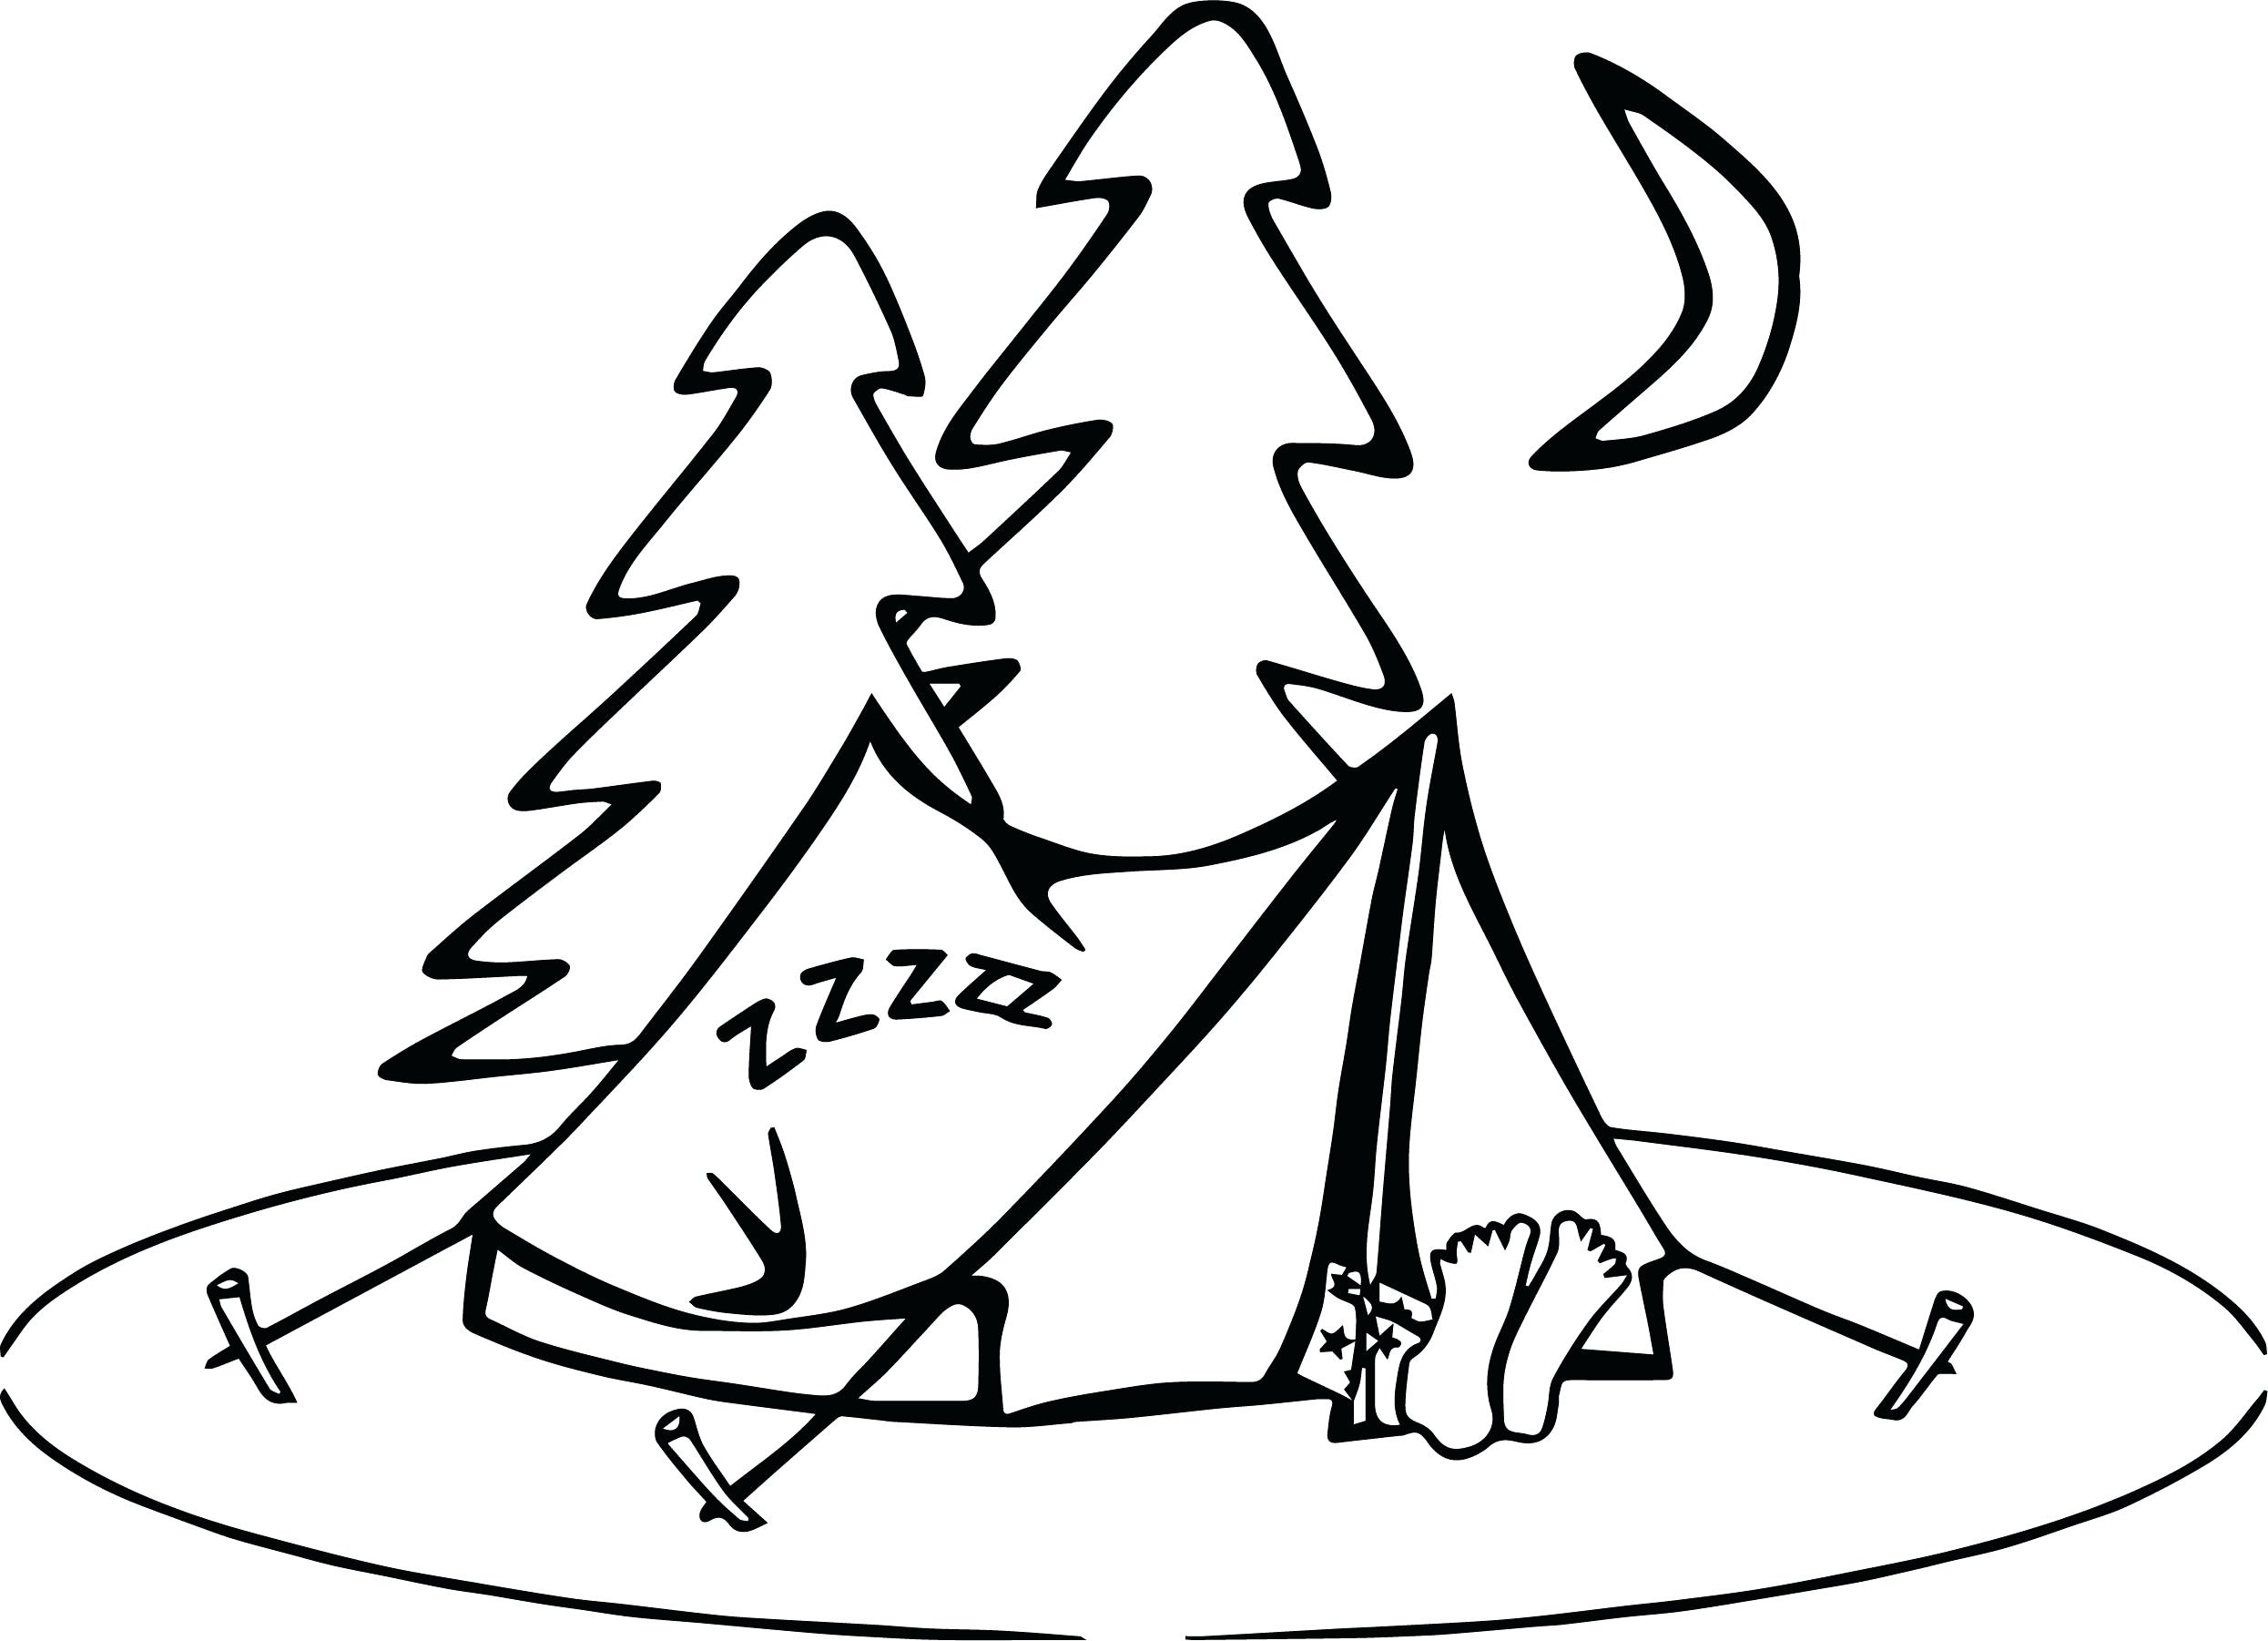 2491x1802 Coloring Pages For Kids Disney Camping Sleeping Page Together